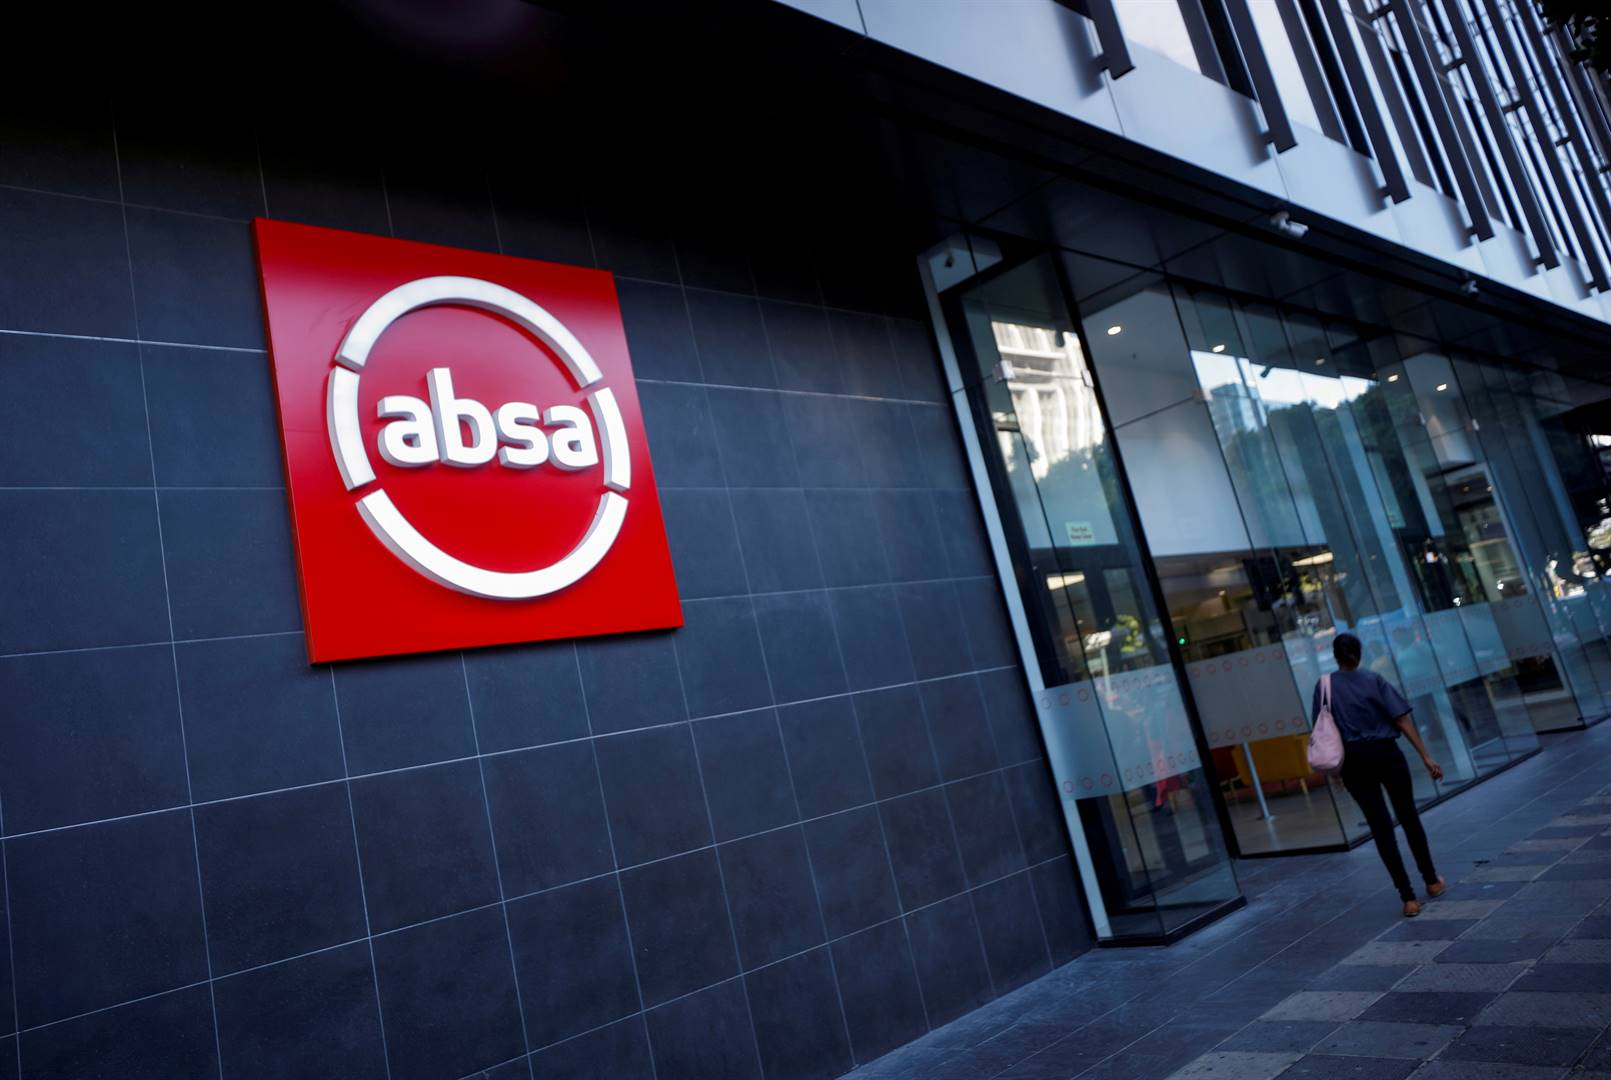 Absa says it is currently envisaged that the proposed B-BBEE scheme it will place up to 8% of the group's issued shares in the hands of staff and third-party investors.